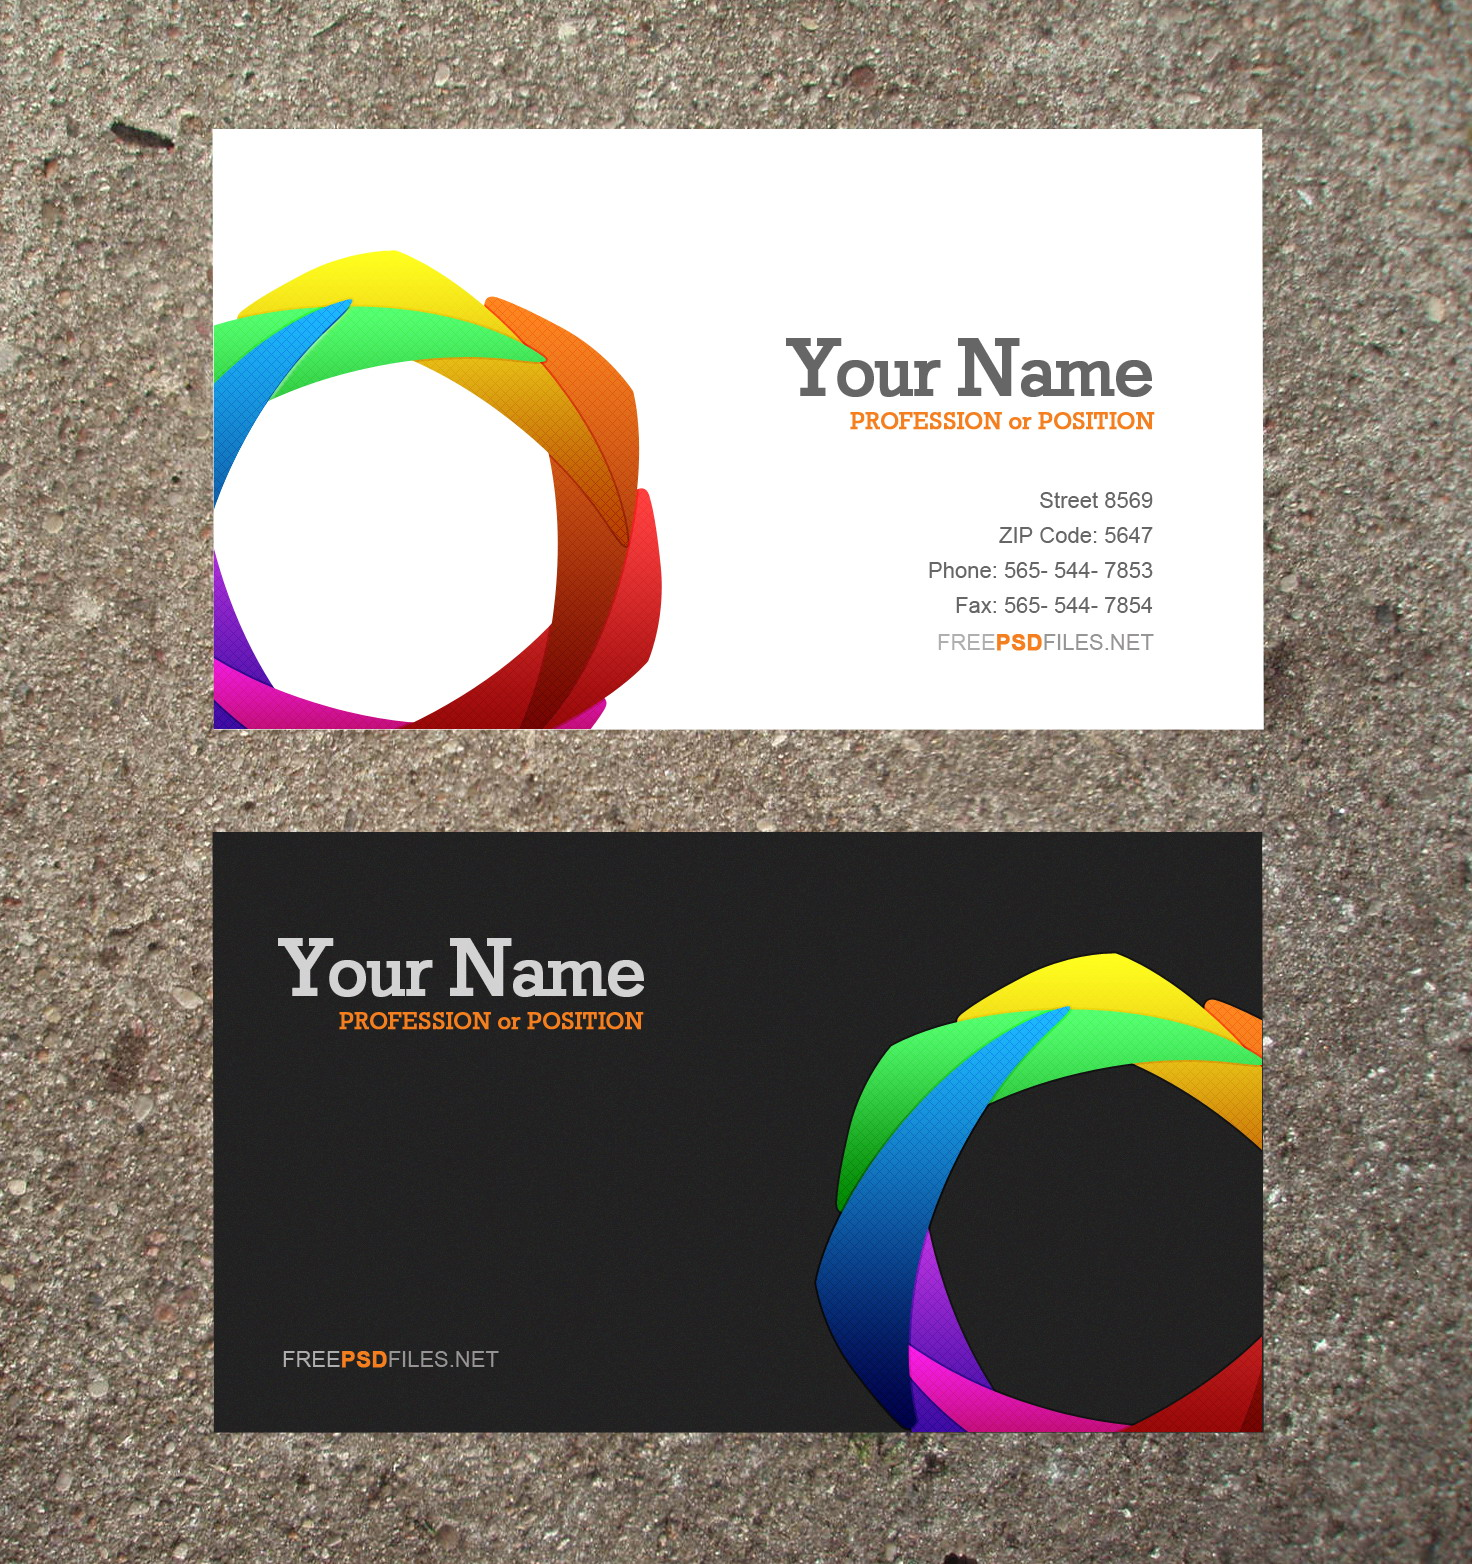 Free business card template 28 images business card templates 10 modern business card psd template free images free accmission